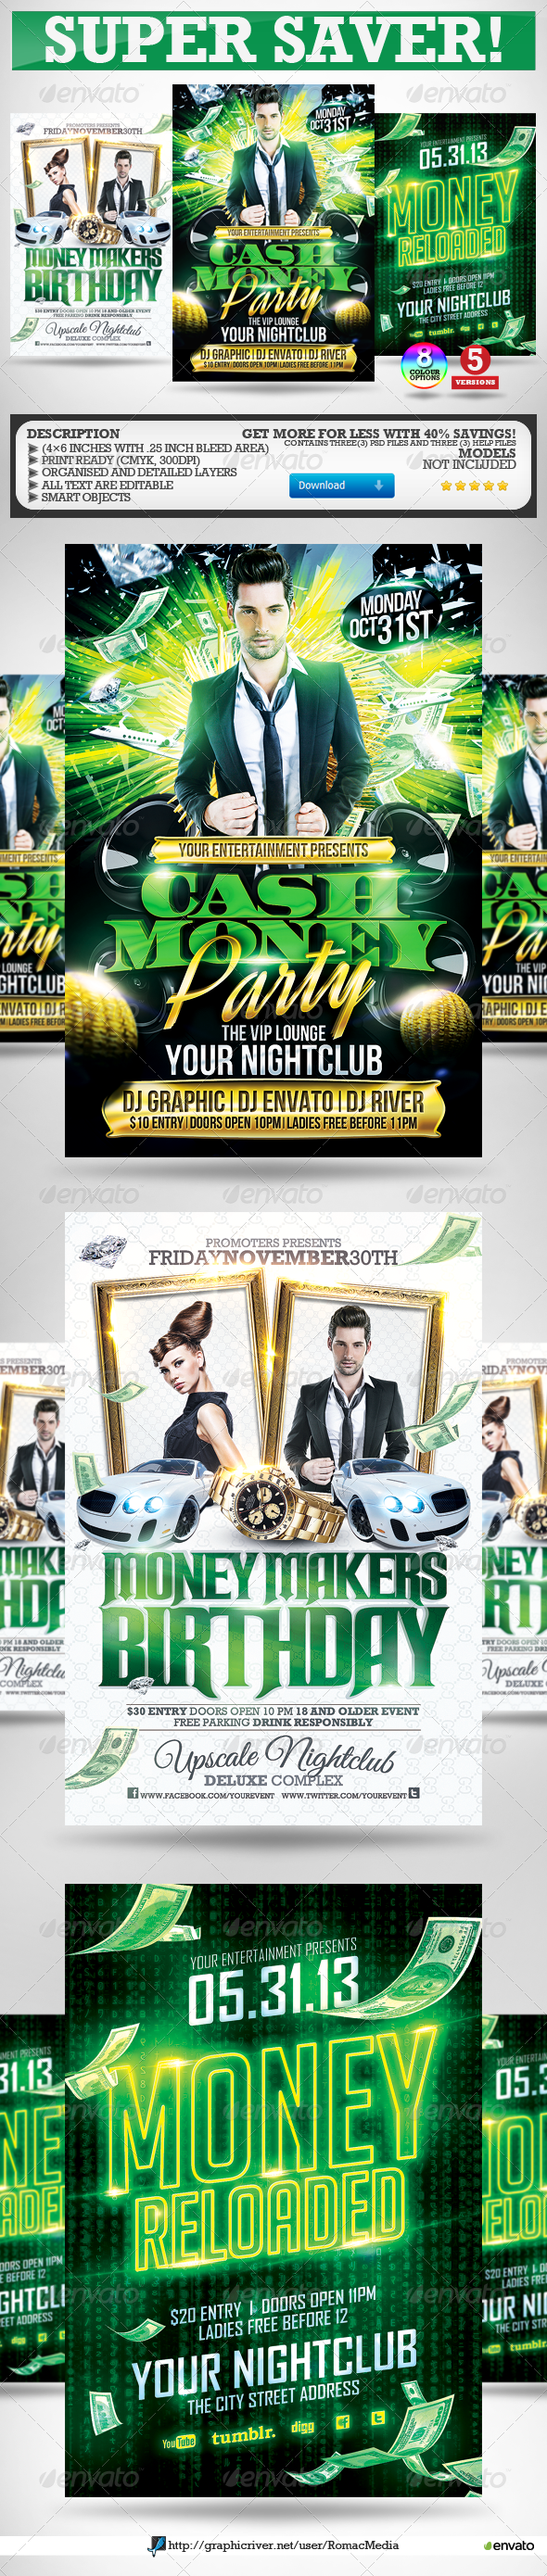 Cash Money Party Flyers Super Bundle  Cash Money Party Flyer And